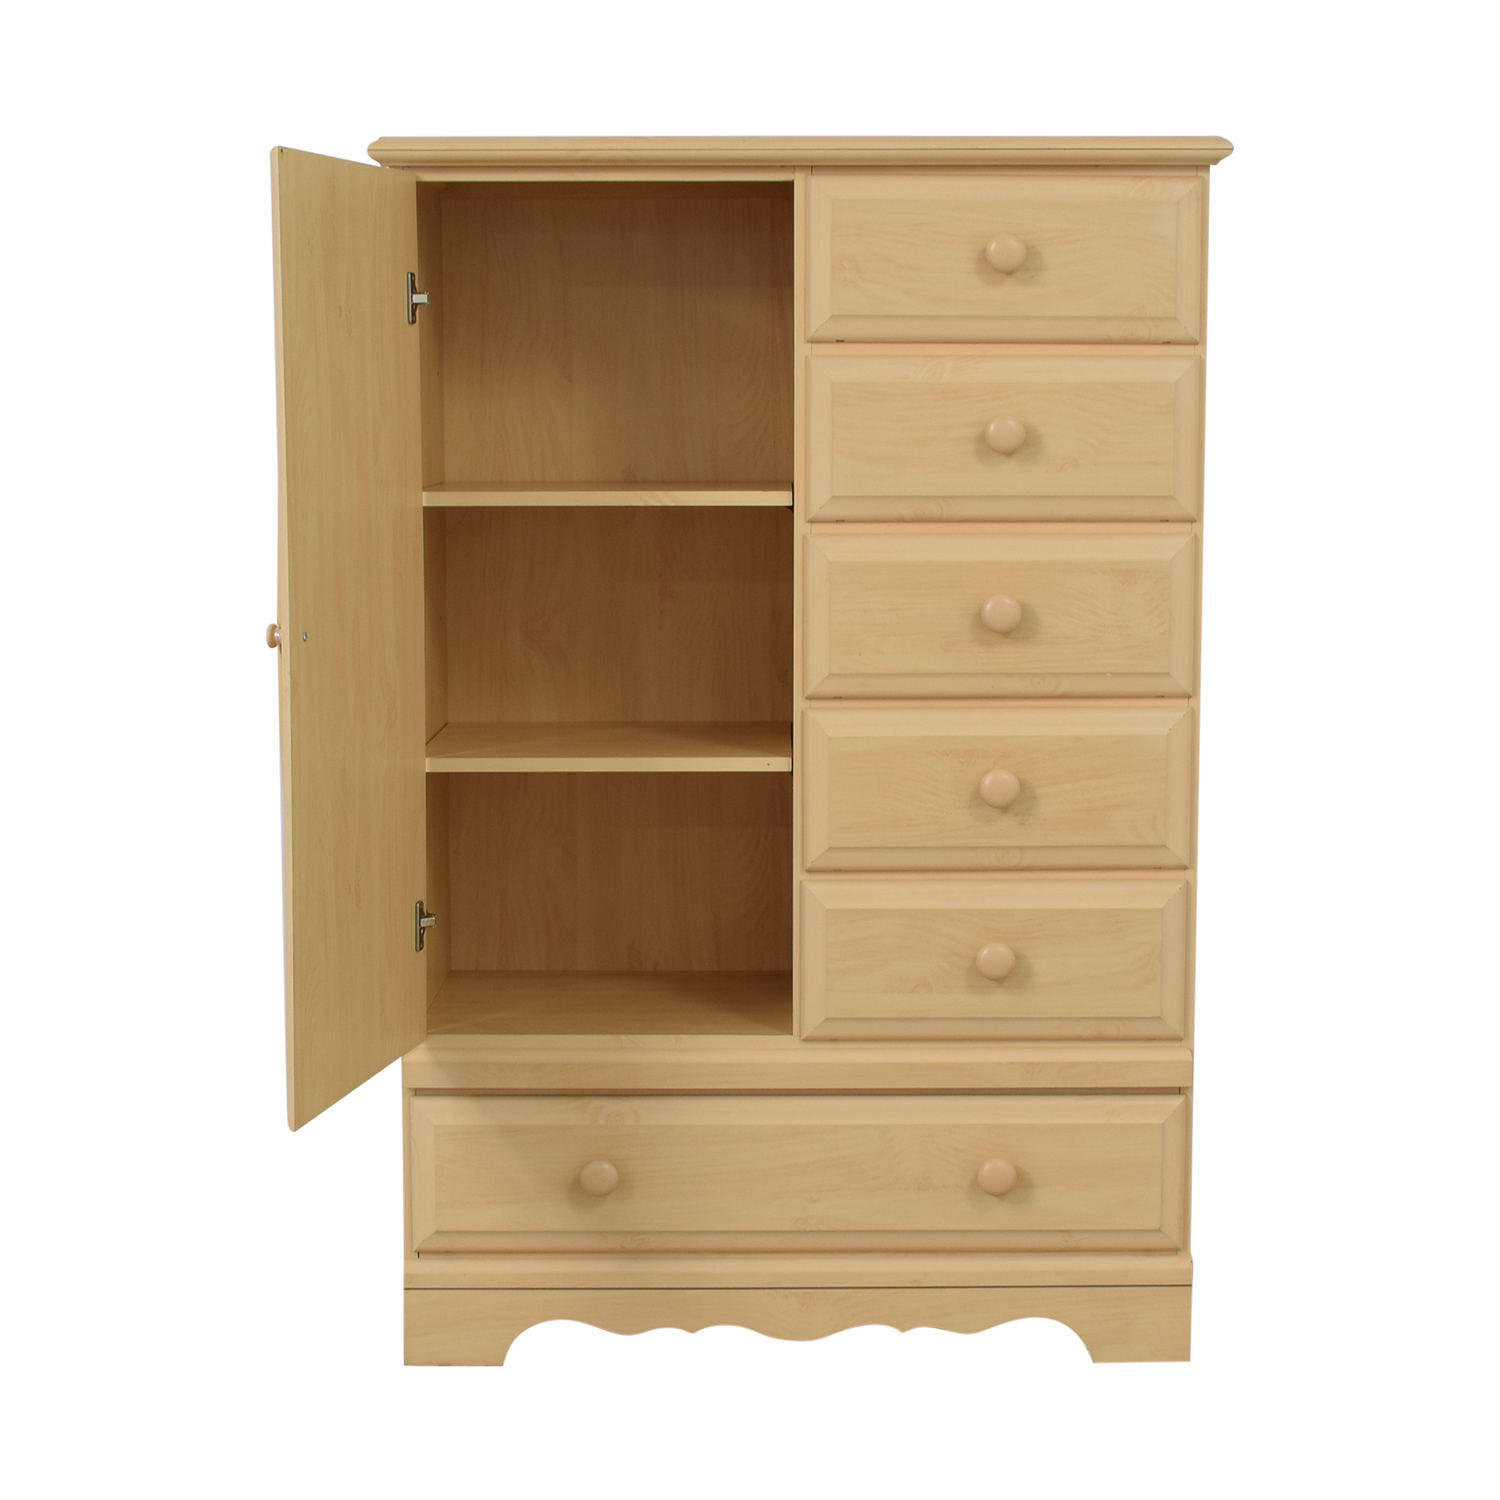 DMI Furniture DMI Furniture Vintage Wood Six-Drawer Child's Armoire with Mirror nyc